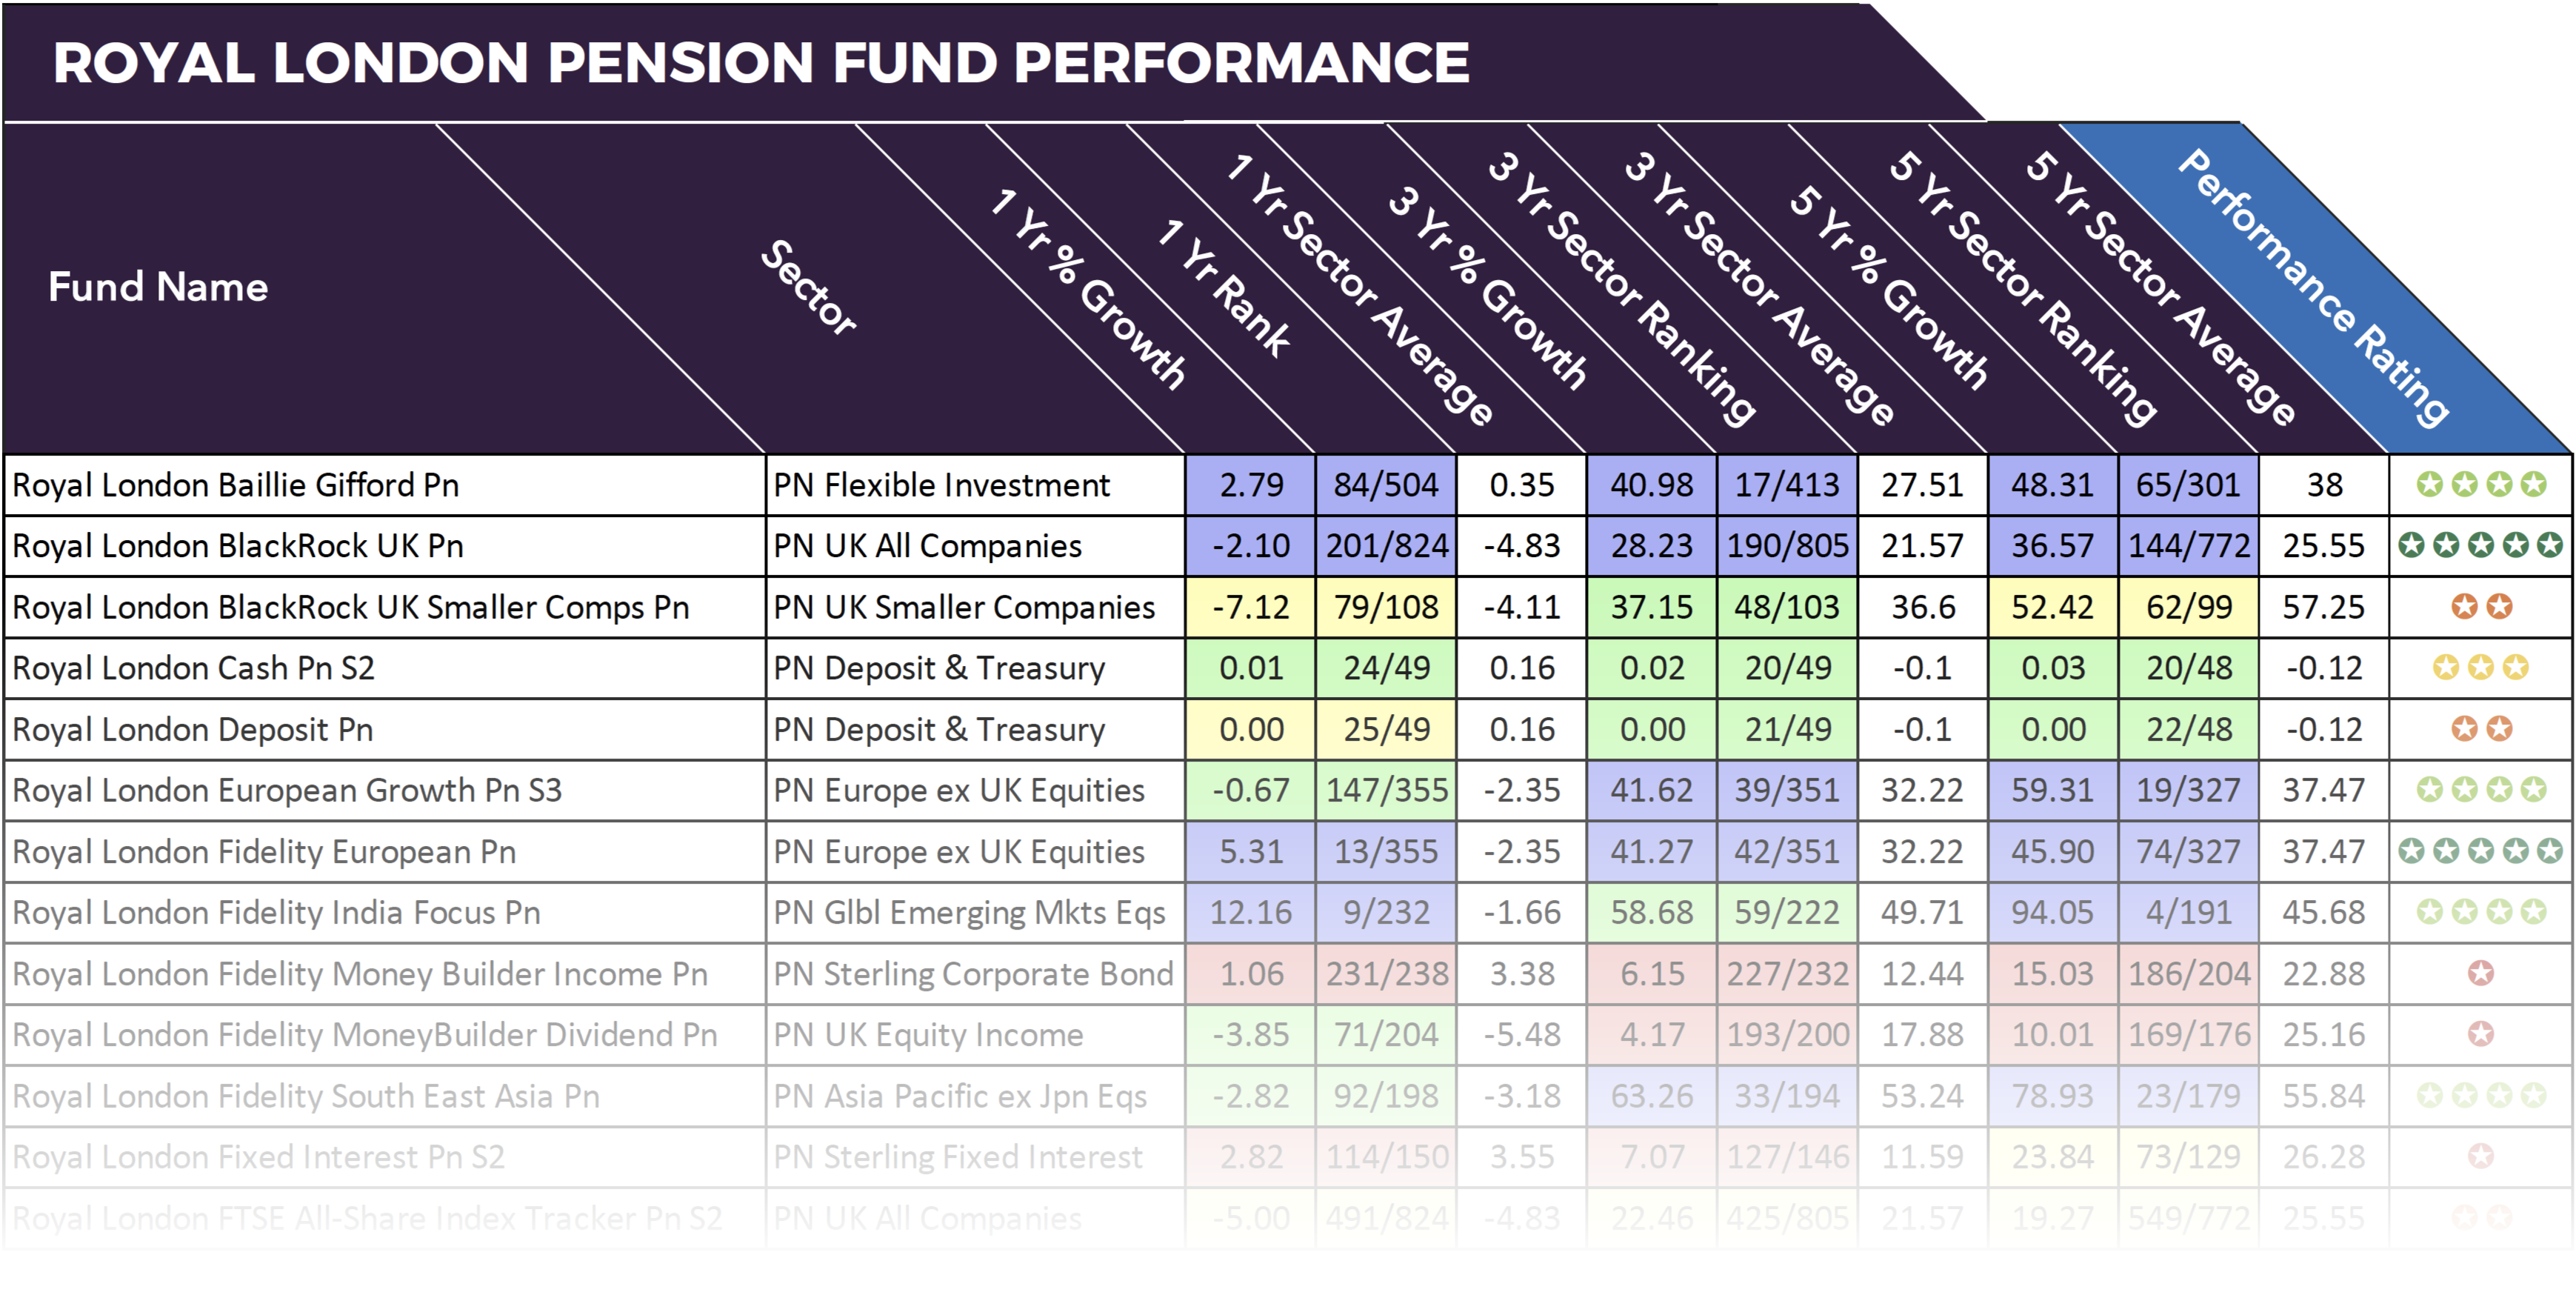 Royal London Pension Funds